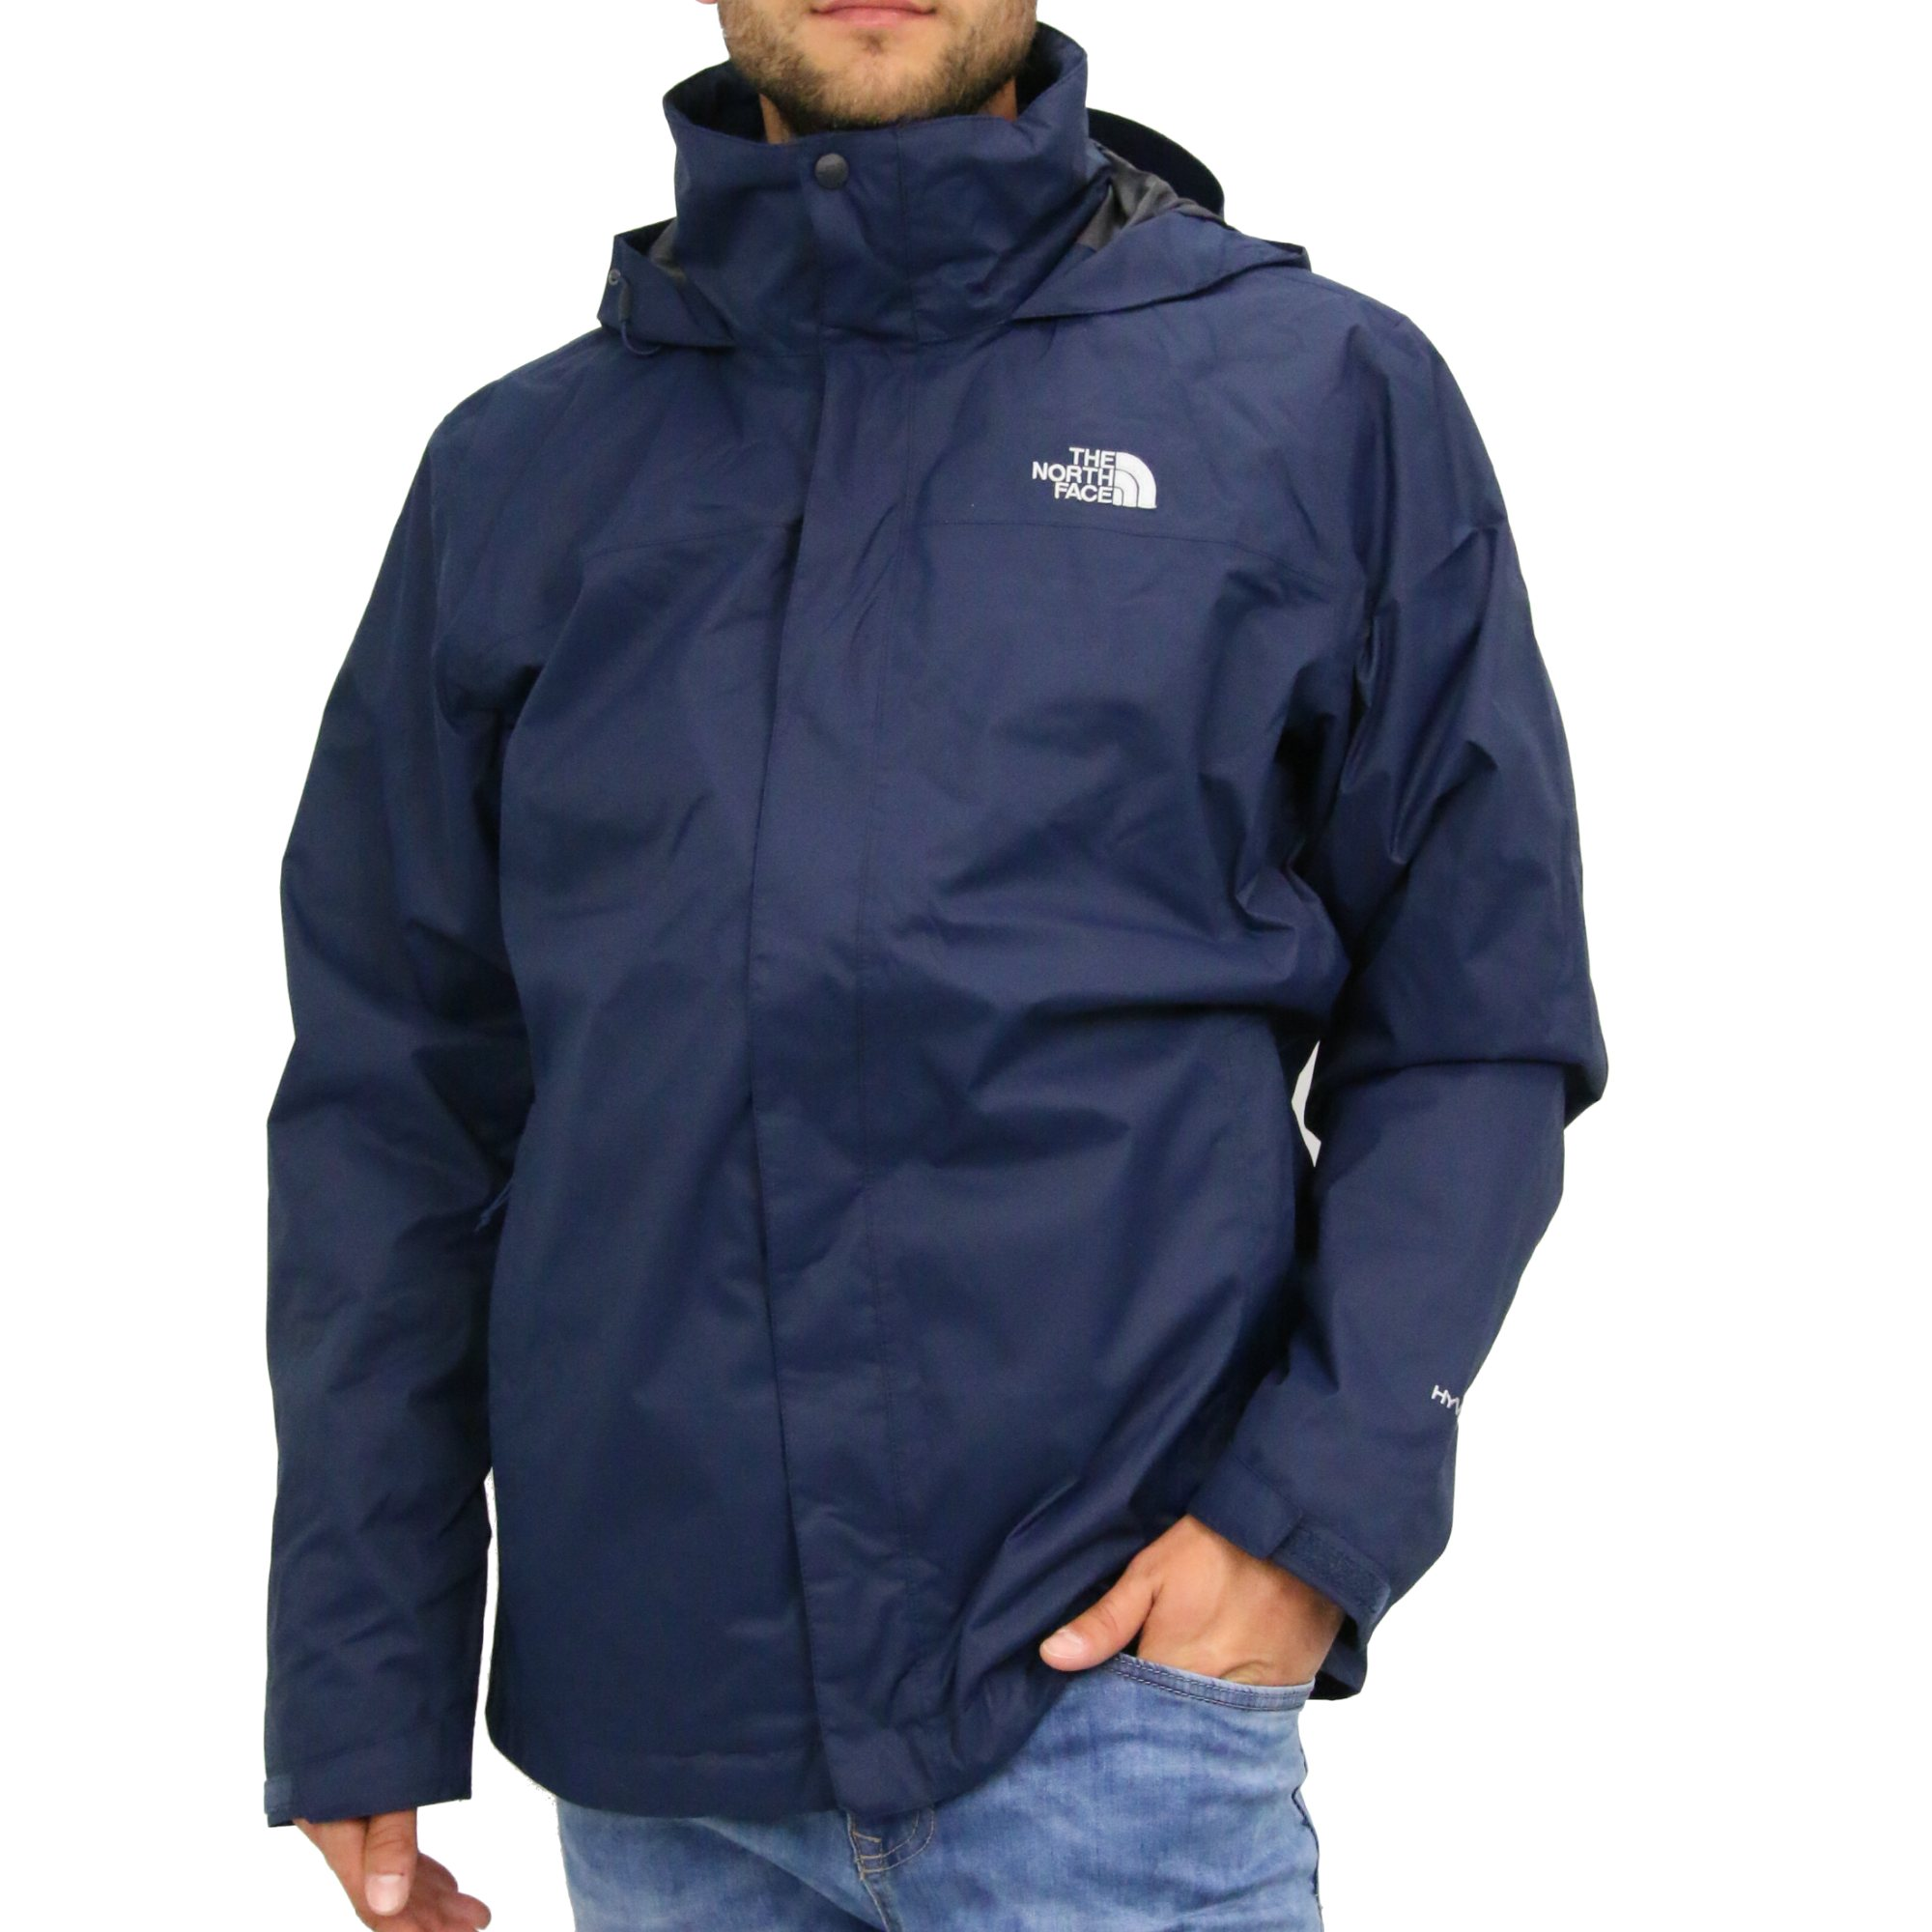 the north face evolve ii triclimate jacke doppeljacke outdoor herren blau ebay. Black Bedroom Furniture Sets. Home Design Ideas